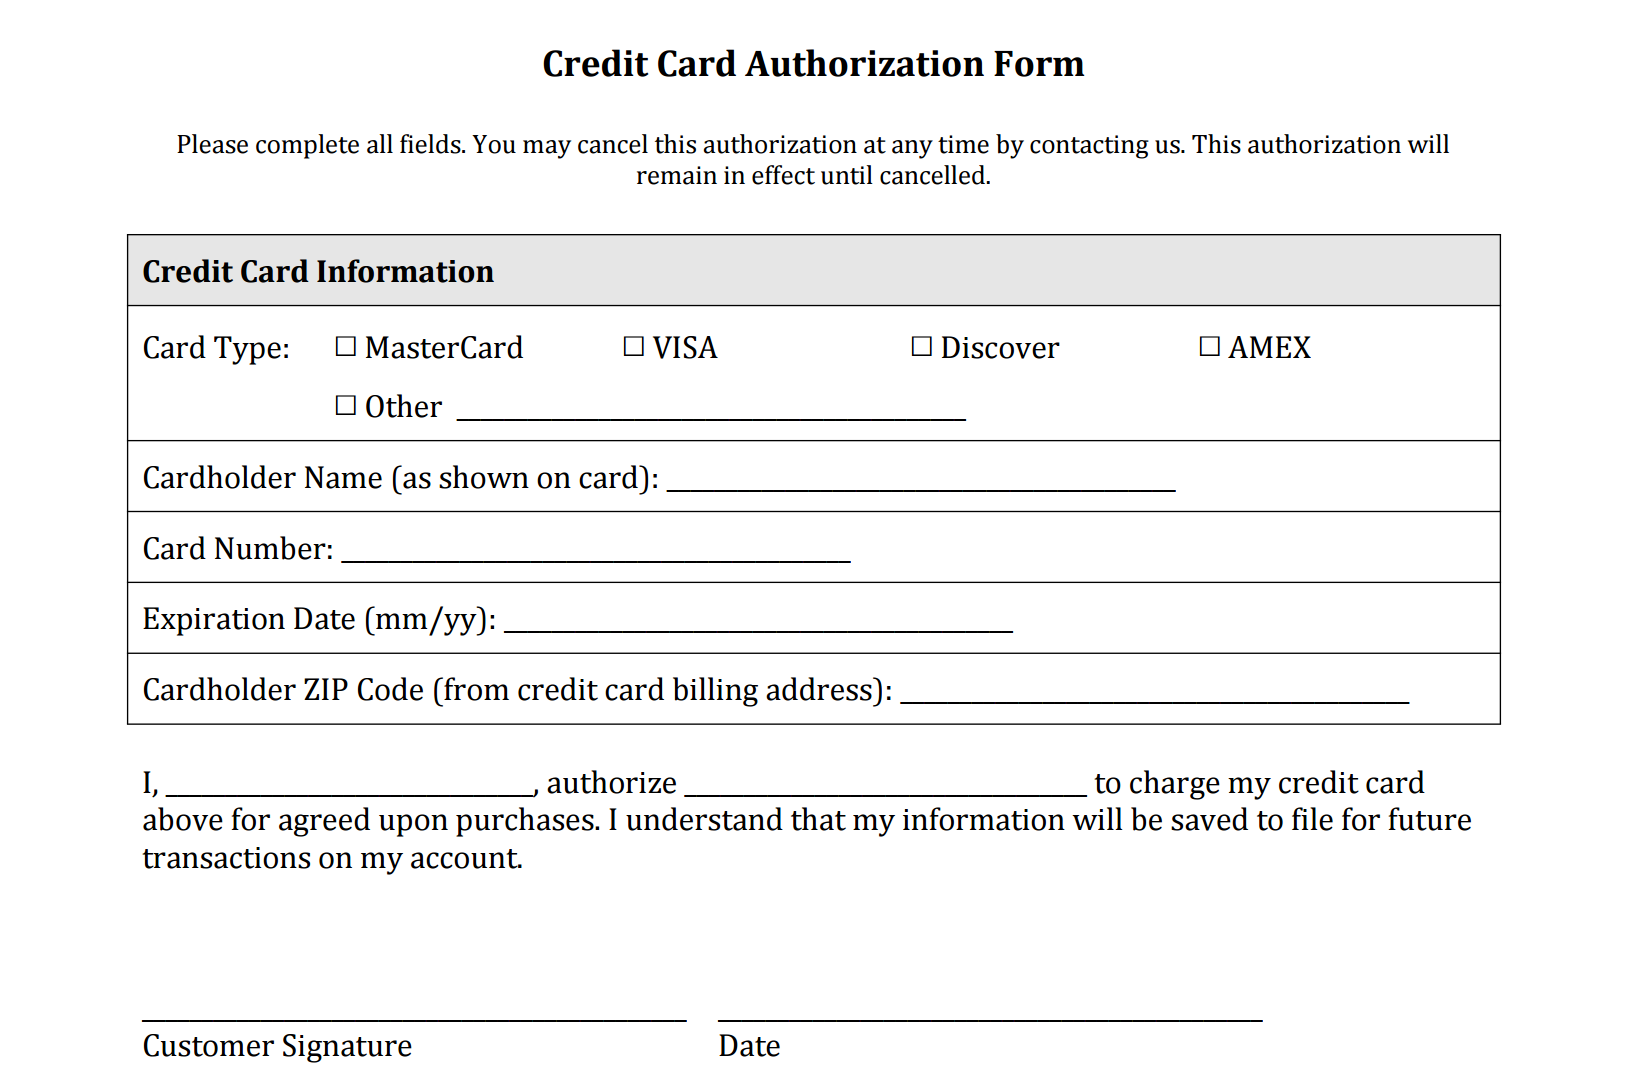 credit card authorization form pdf Credit Card Authorization Form Templates [Download]